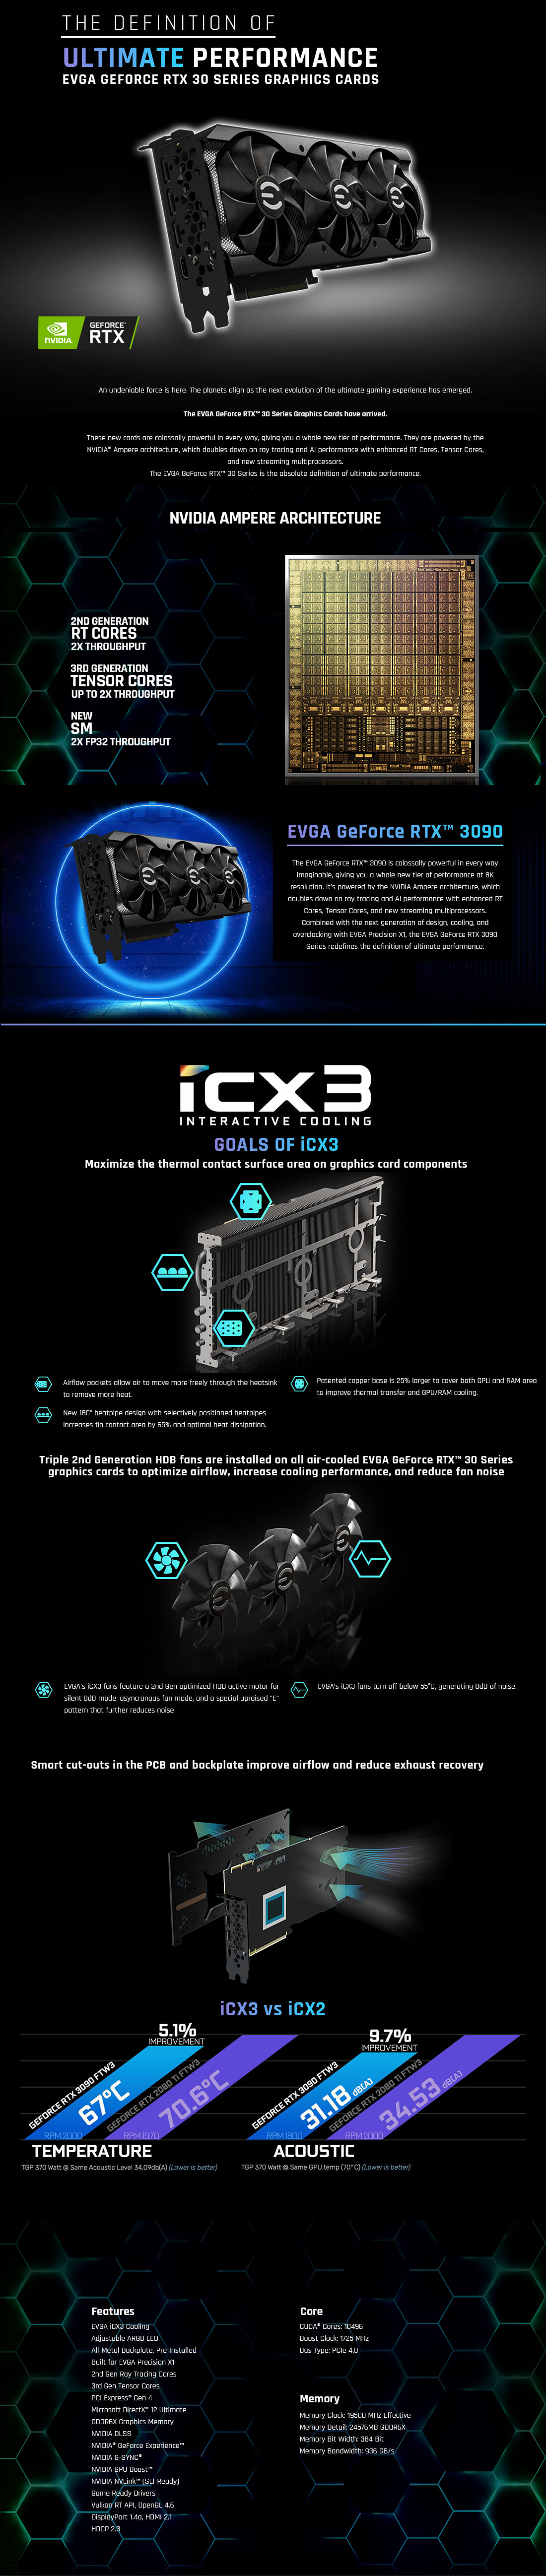 A large marketing image providing additional information about the product eVGA GeForce RTX 3090 XC3 Ultra 24GB GDDR6X - Additional alt info not provided